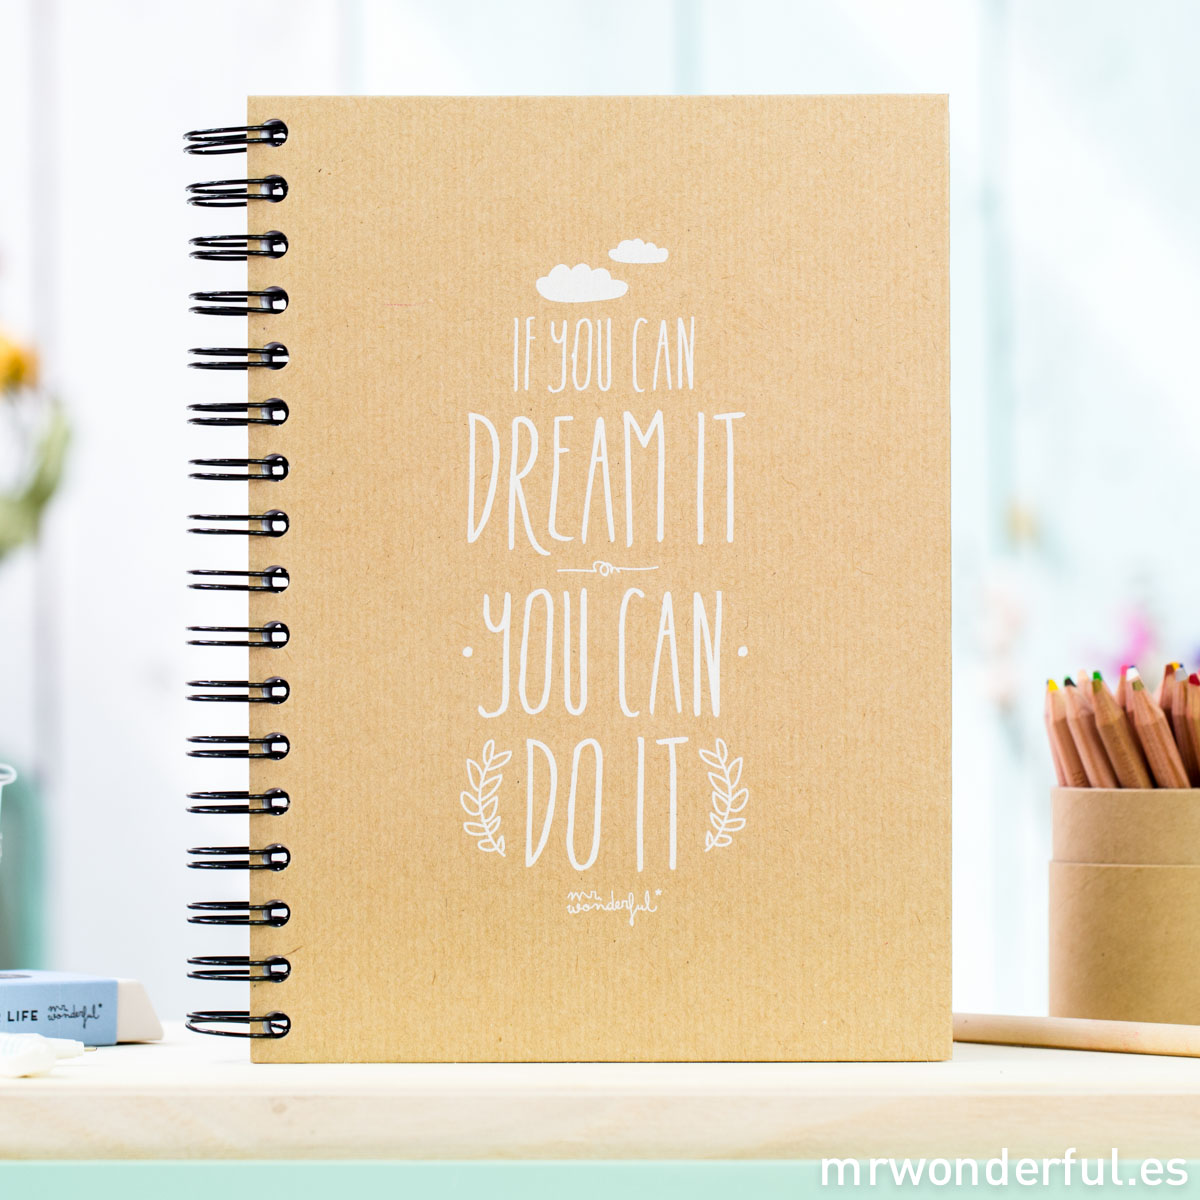 mrwonderful_LIB21A_libreta-craft_If-you-can-dream-4